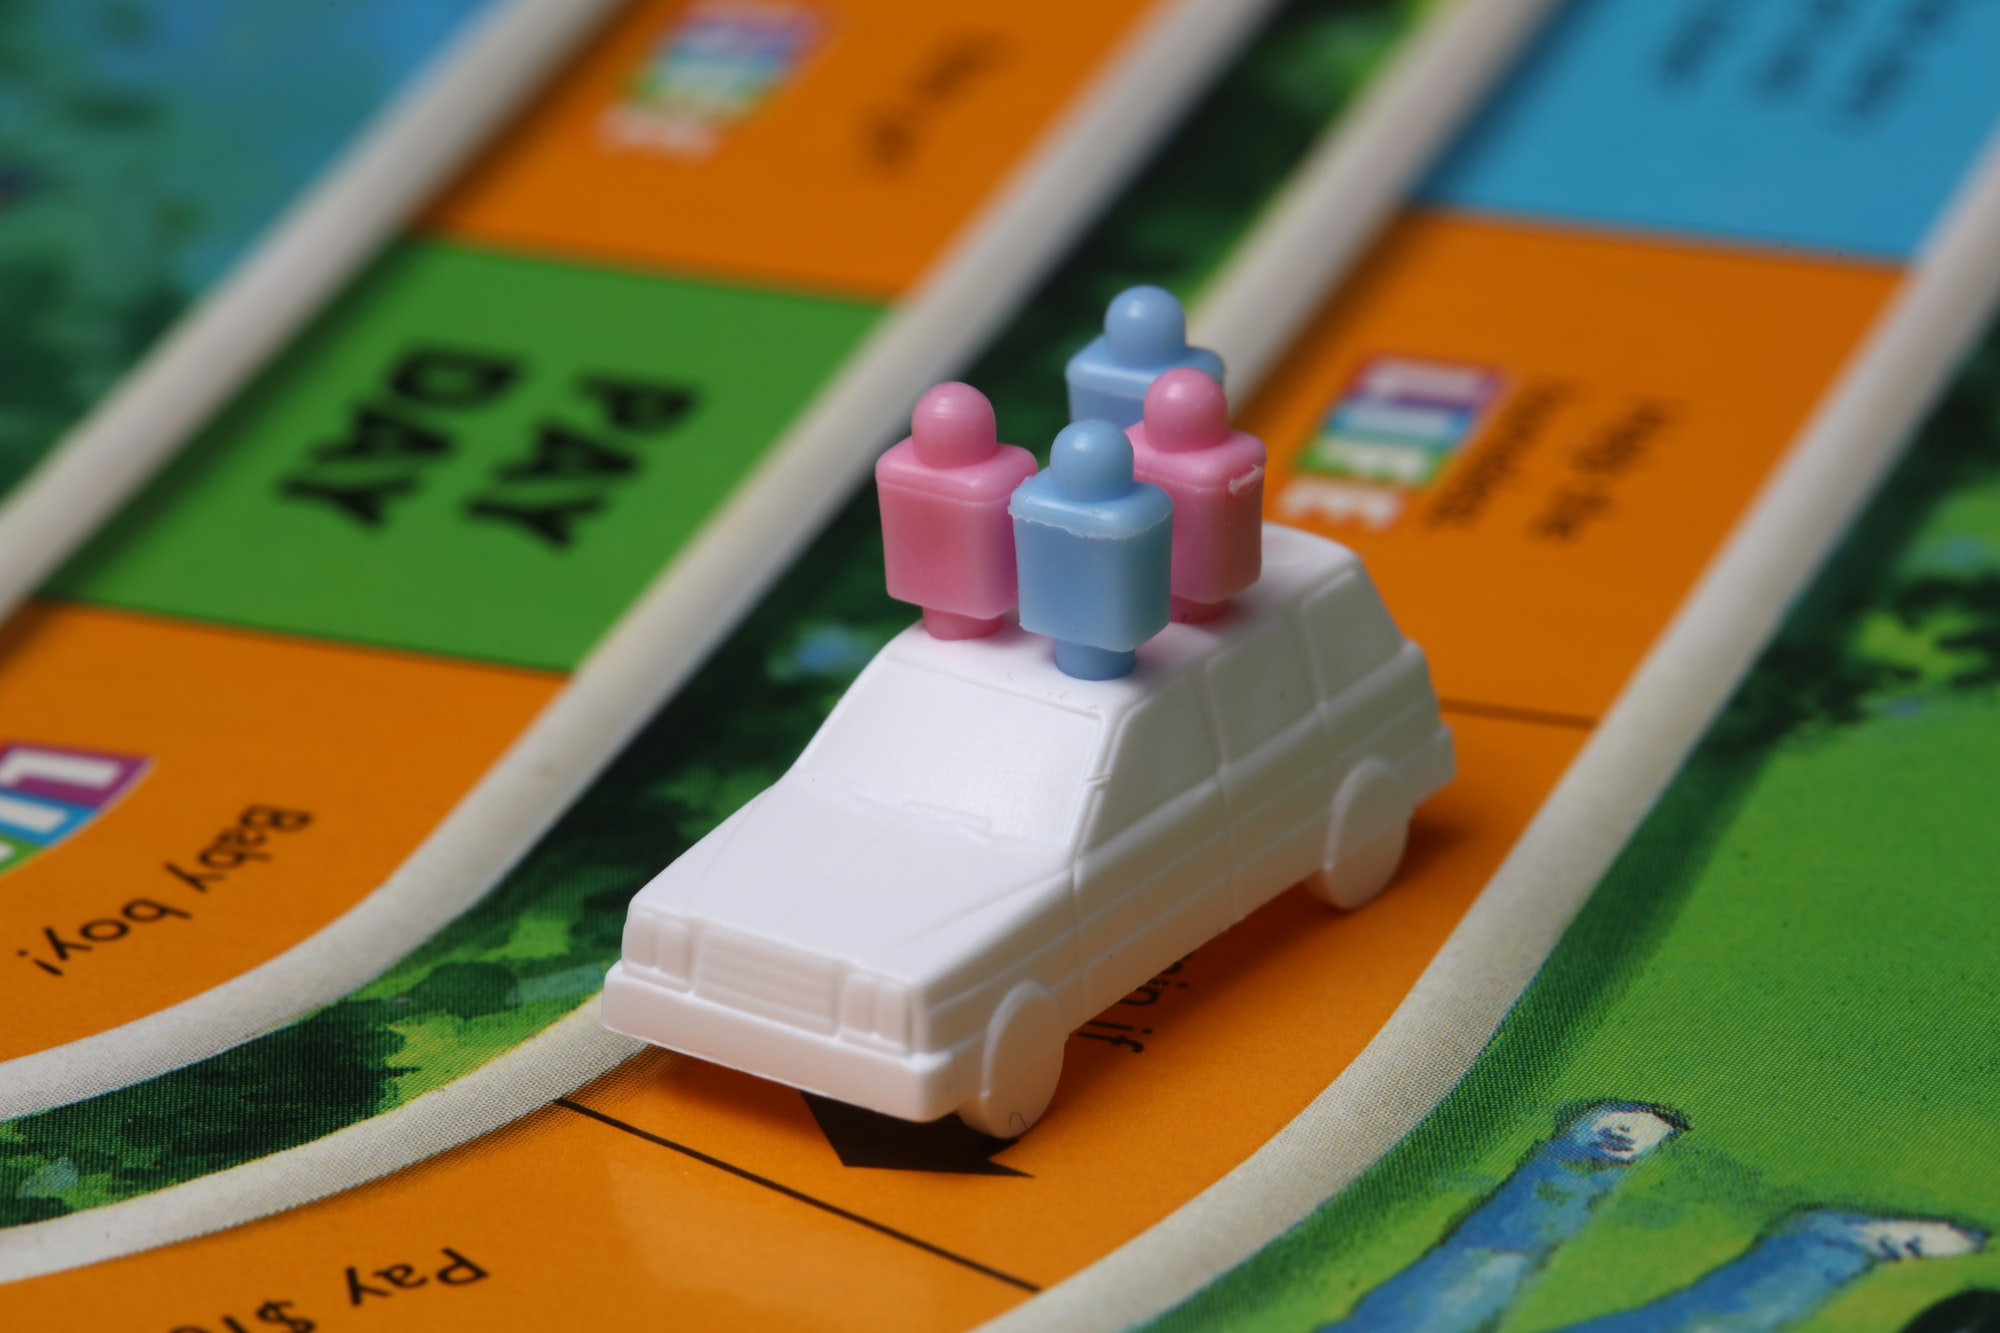 Game of life close-up